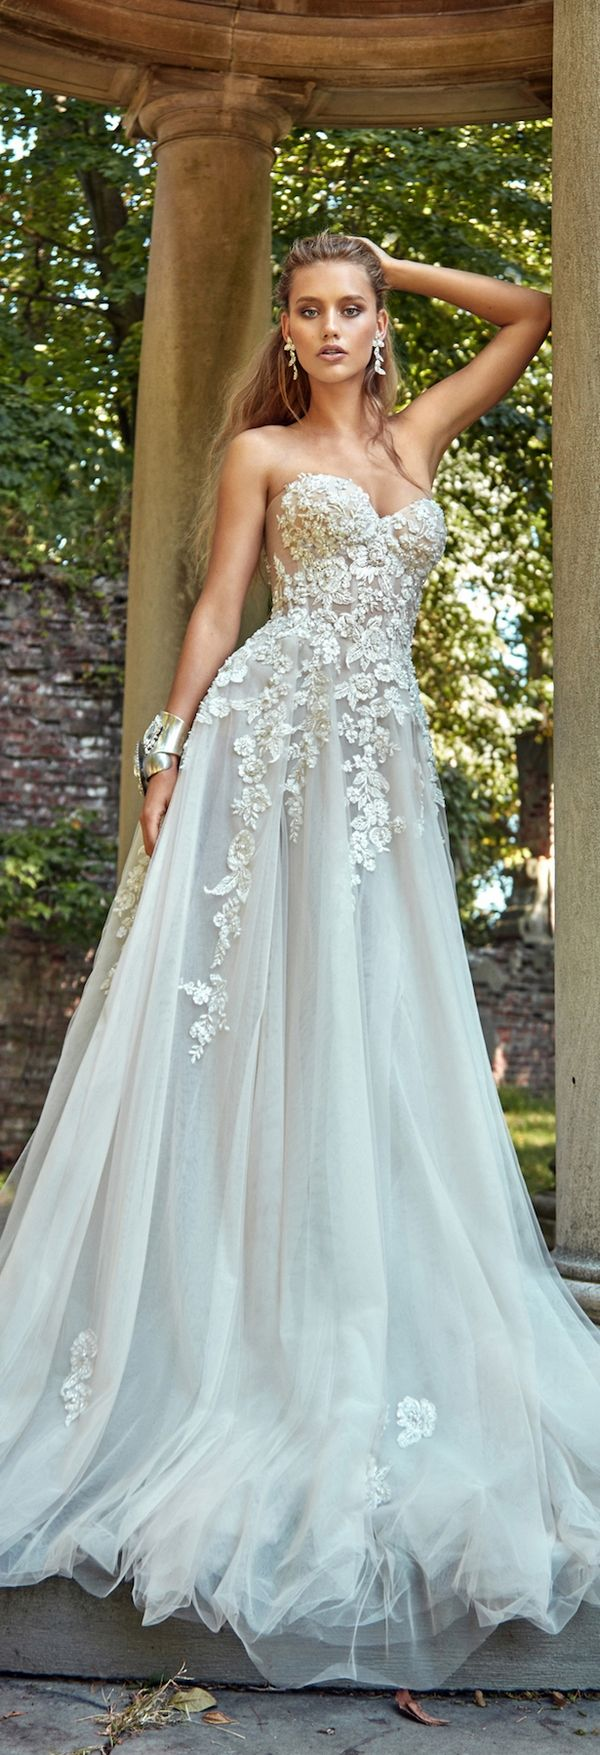 358 best Wedding ideas images on Pinterest | Party outfits, Bridal ...